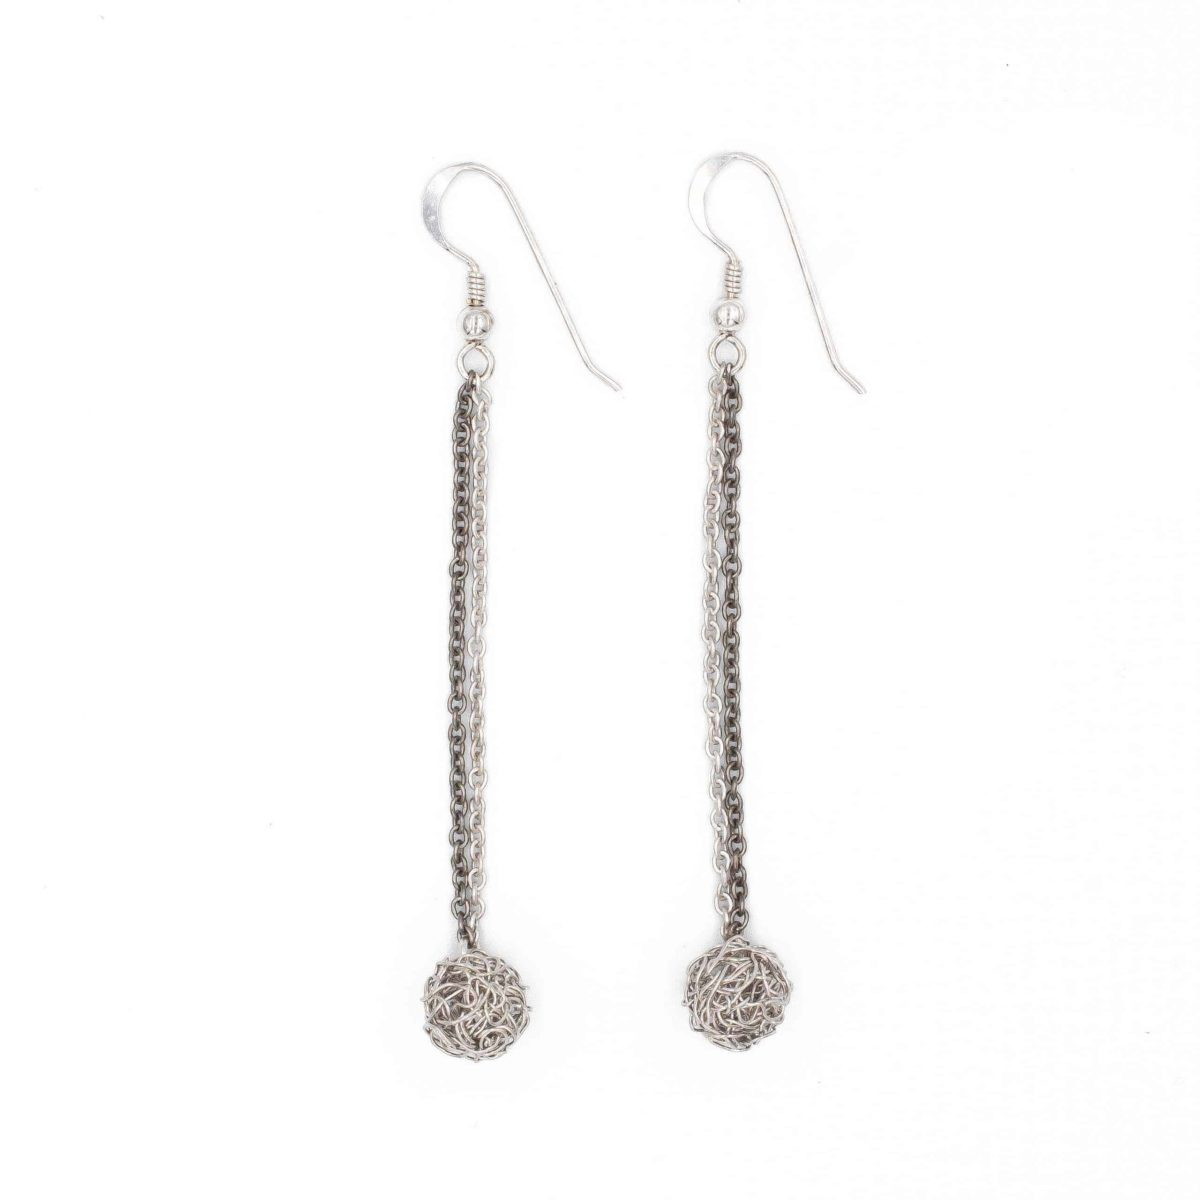 long silver earrings with a small handmade sphere